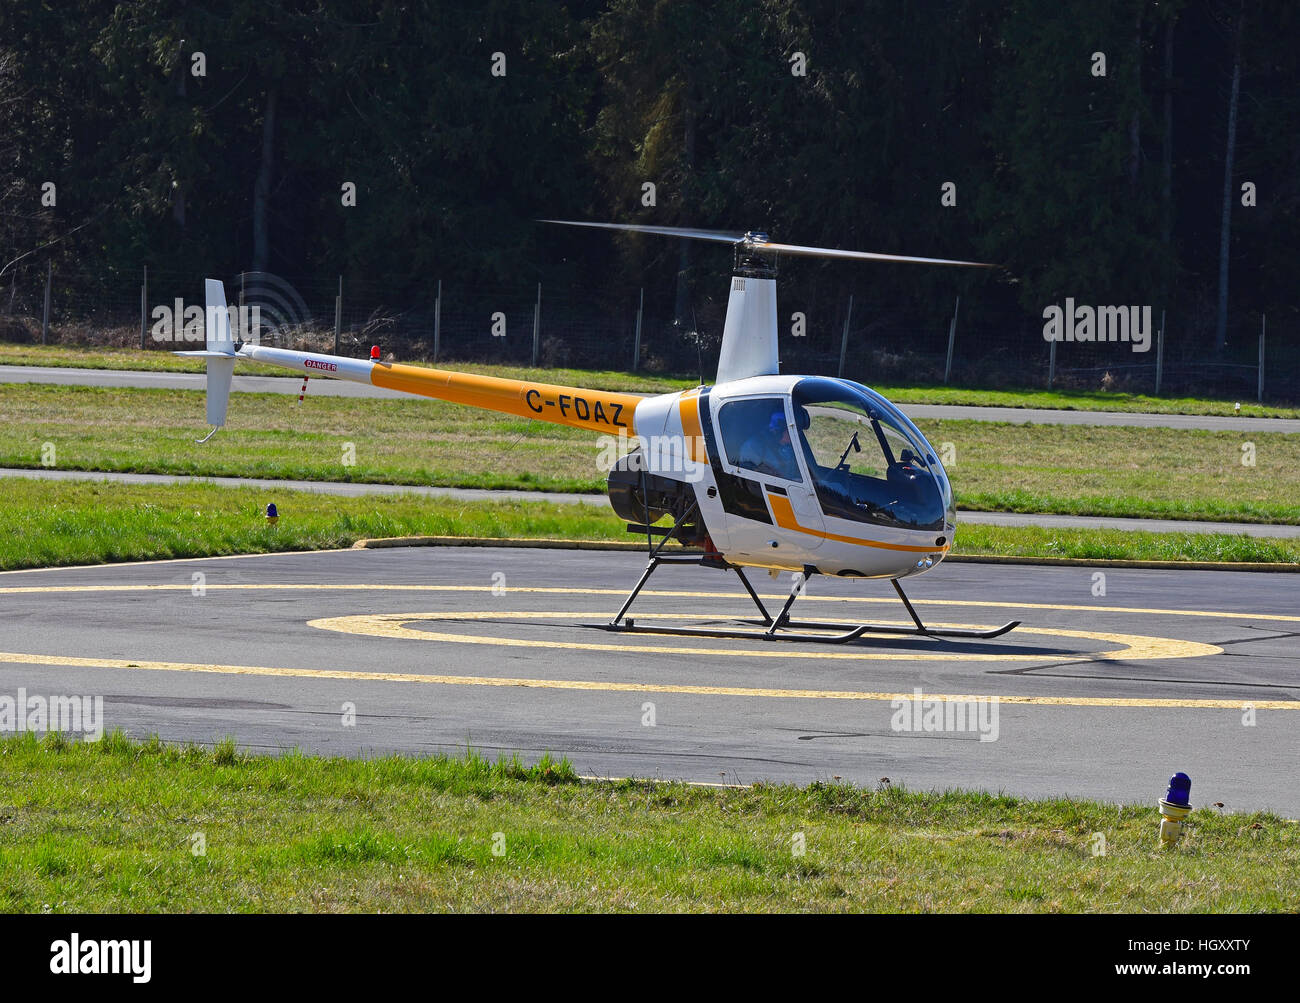 Robinson R22 (C-FDAZ) Light two seat helicopter at Qualicum airport on Vancouver island, BC. Canada.  SCO 11,598. - Stock Image